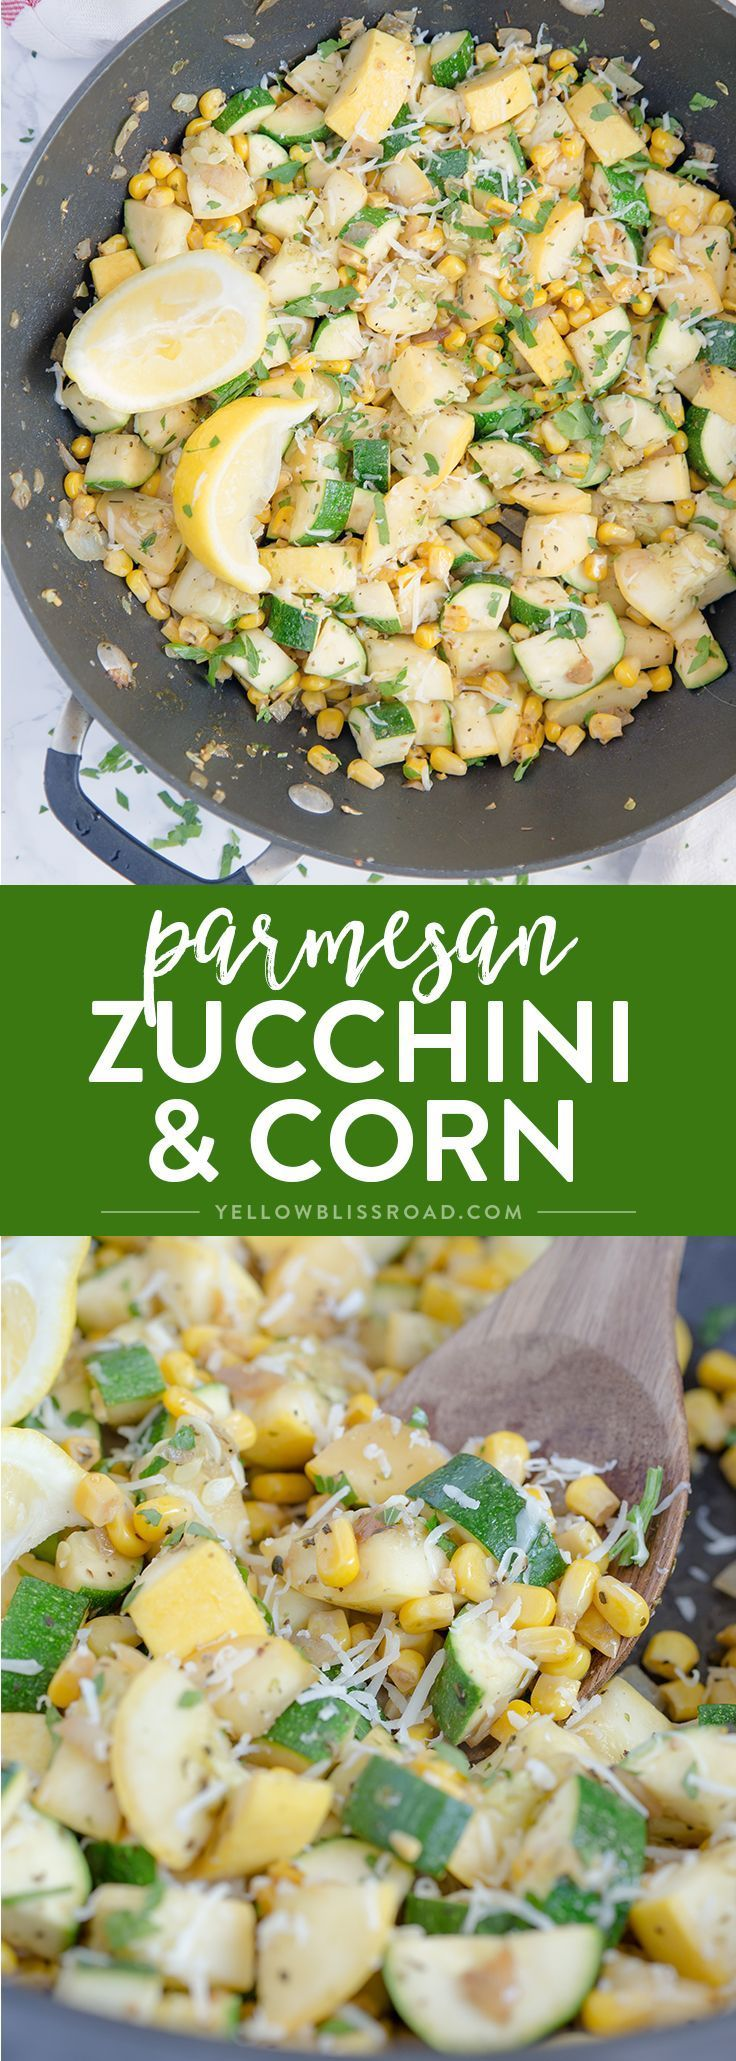 Parmesan Zucchini and Corn images